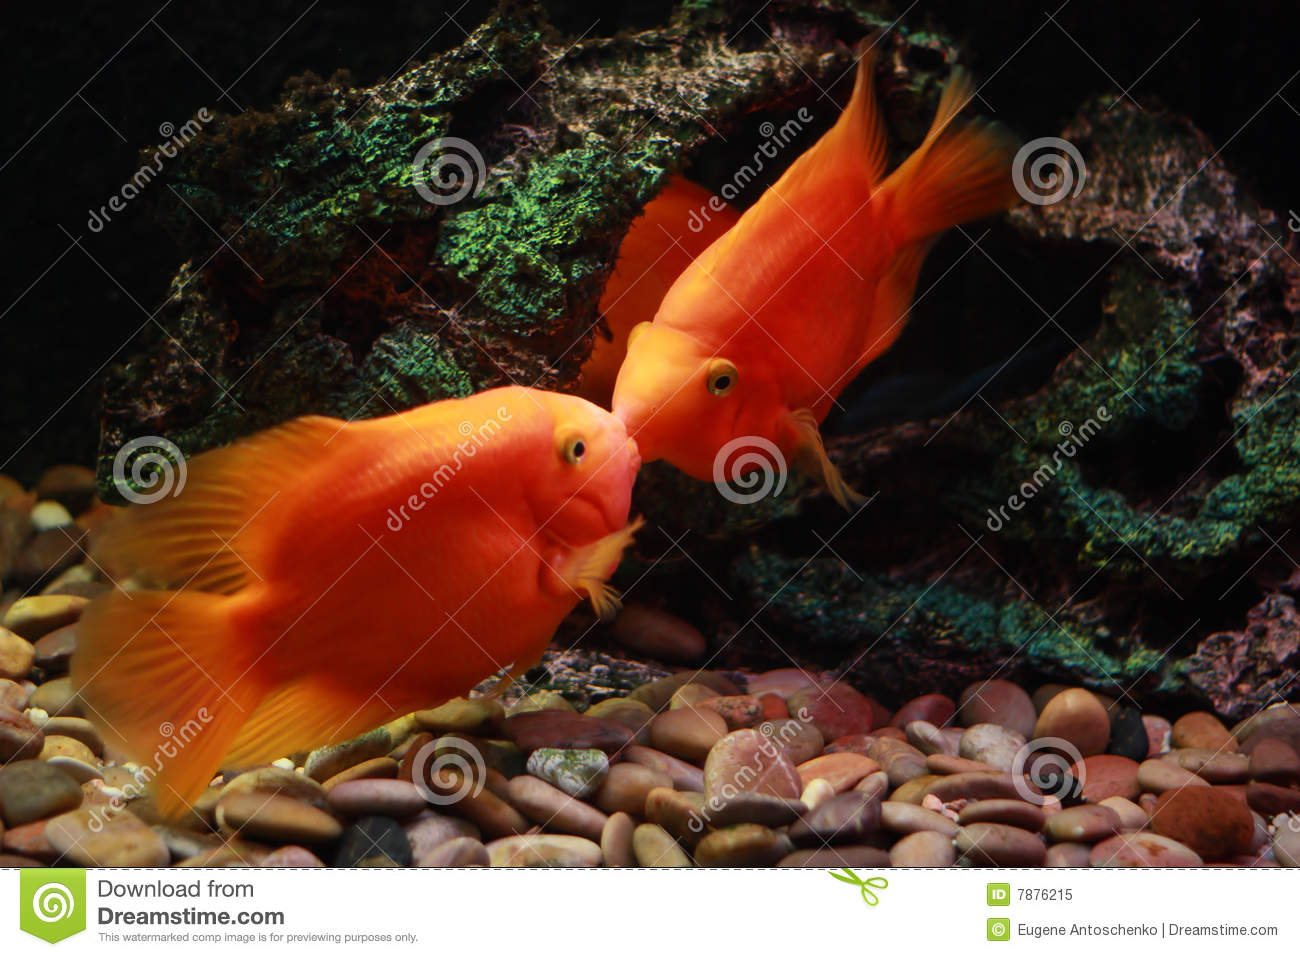 Kissing Fish Stock Photos, Images, & Pictures - 255 Images